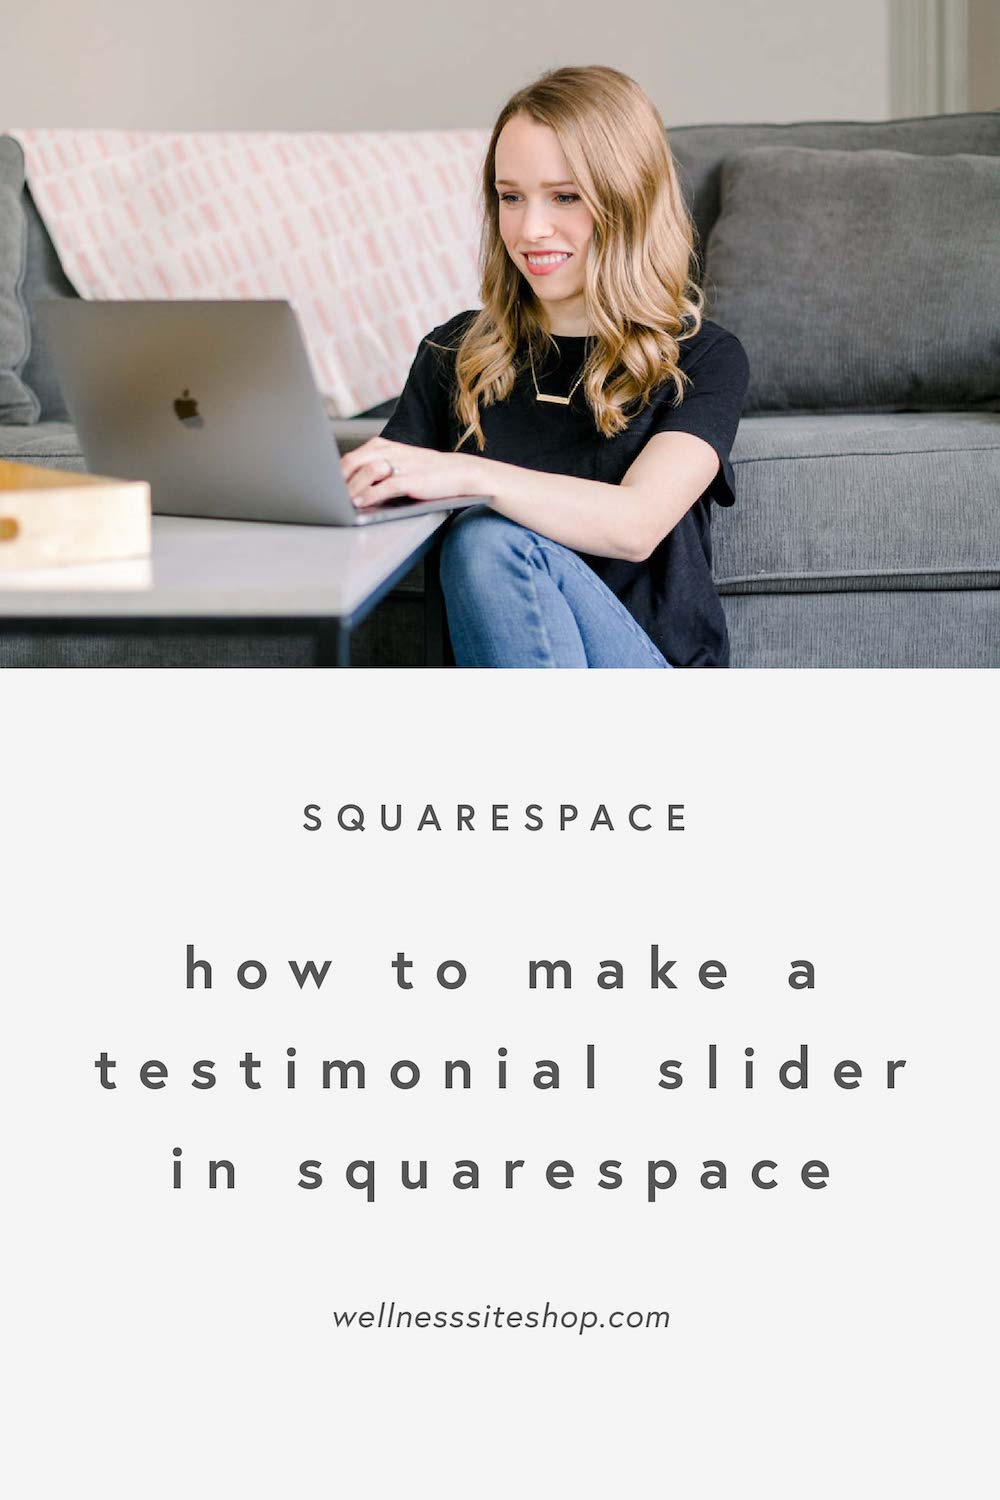 How to make a testimonial slider in squarespace.jpg